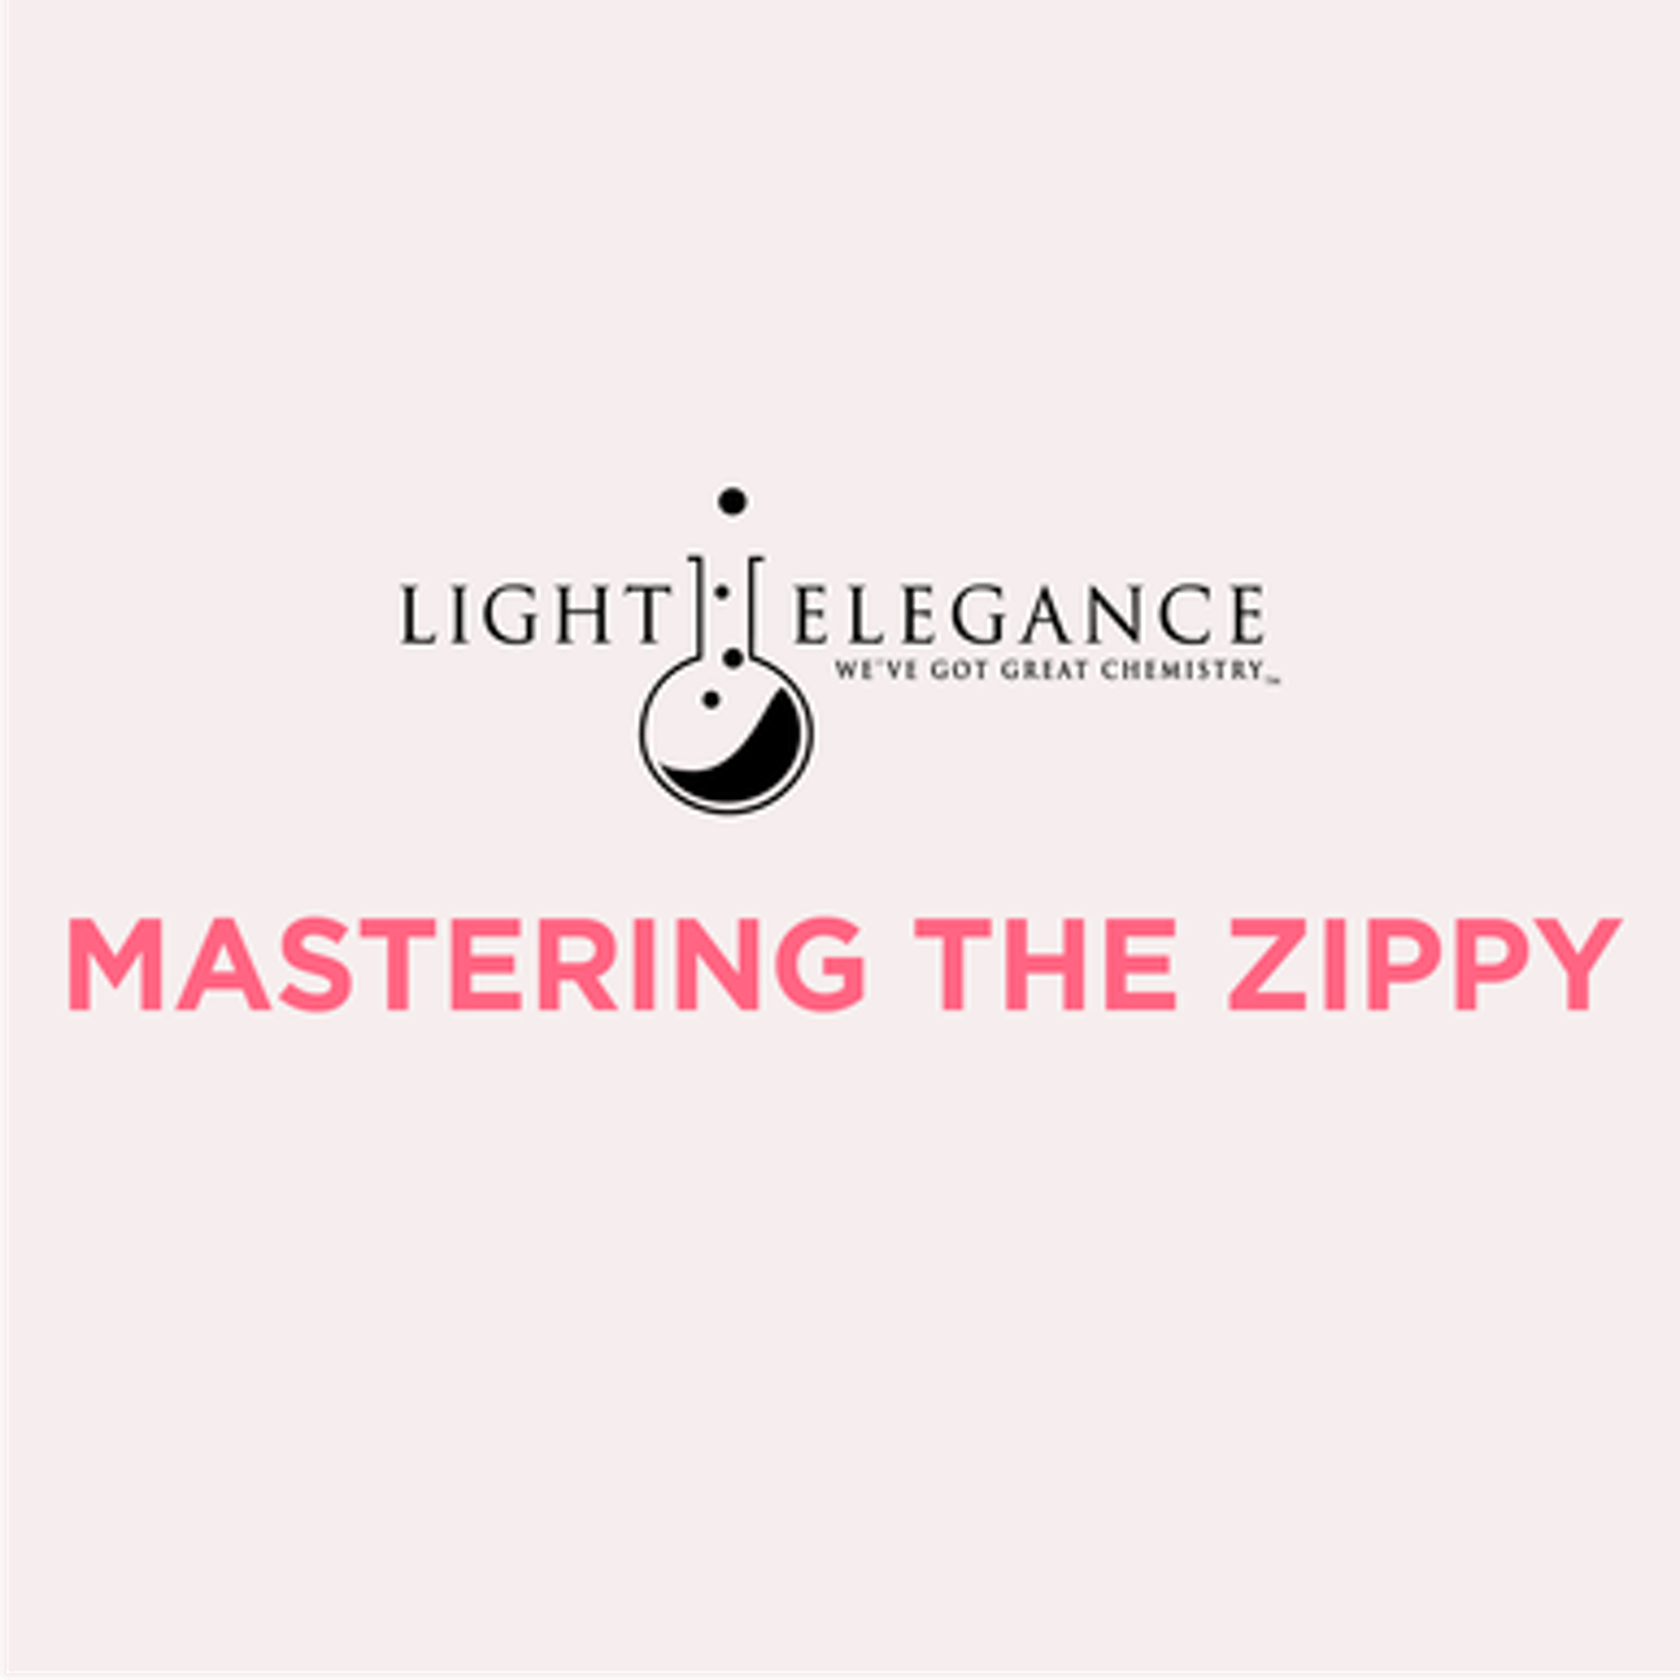 Mastering the Zippy - New In